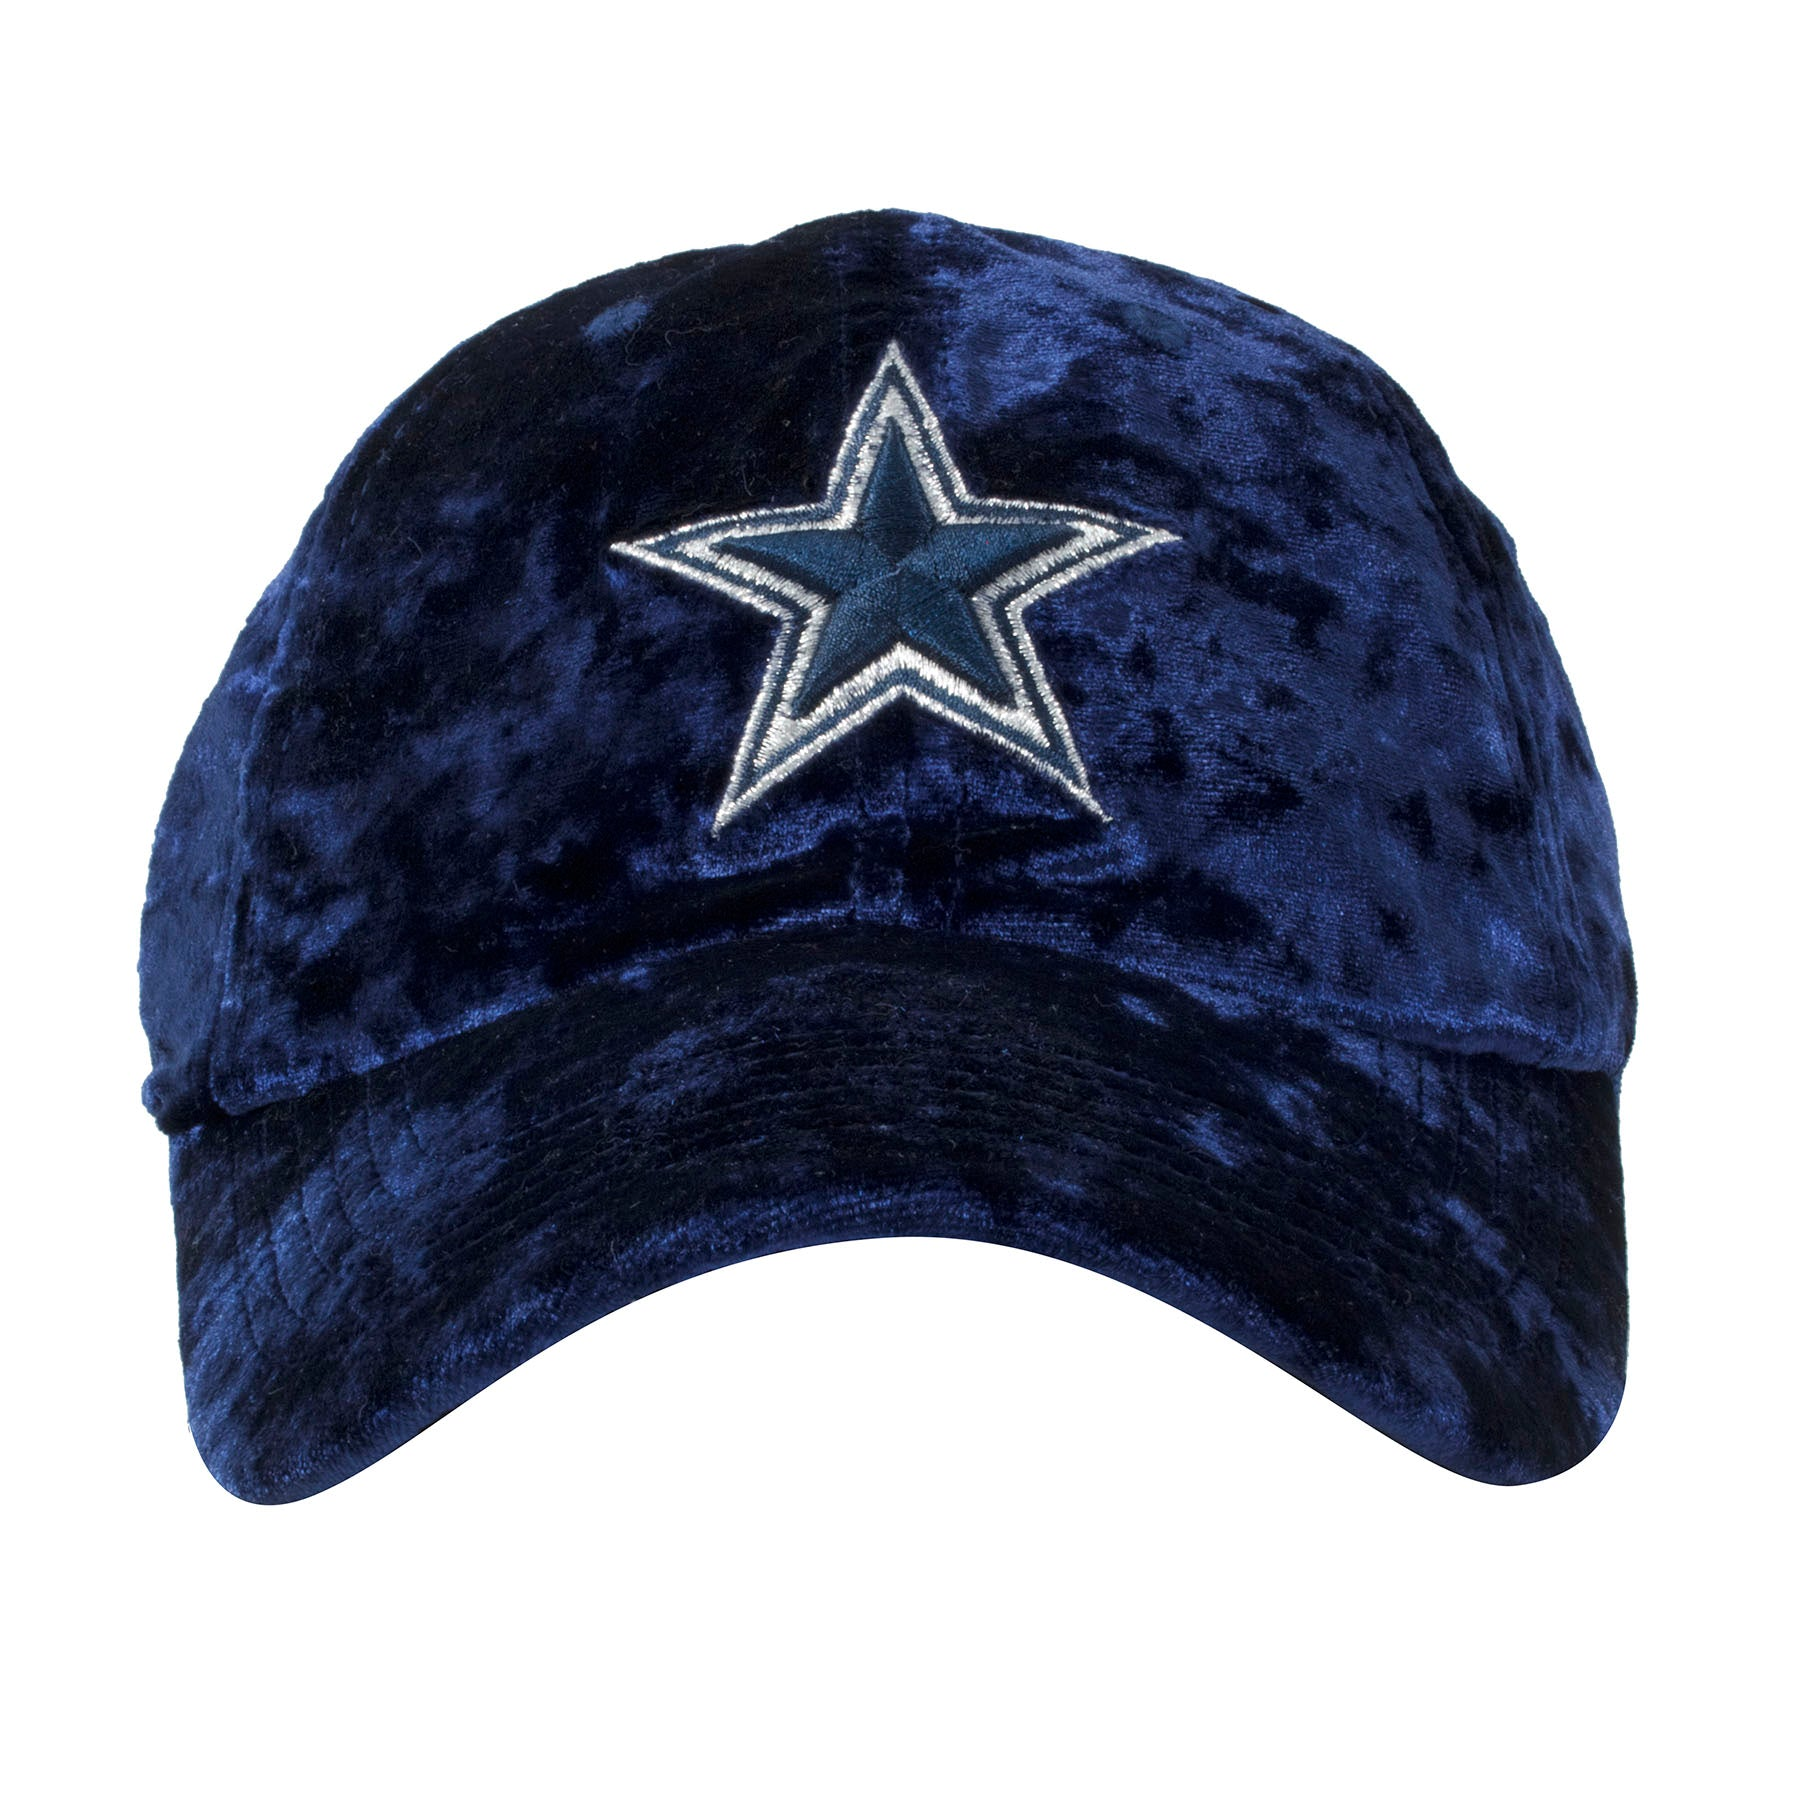 b5f92cecd98fcc Embroidered on the front of the velour navy blue Dallas Cowboys women's cap  is a Dallas